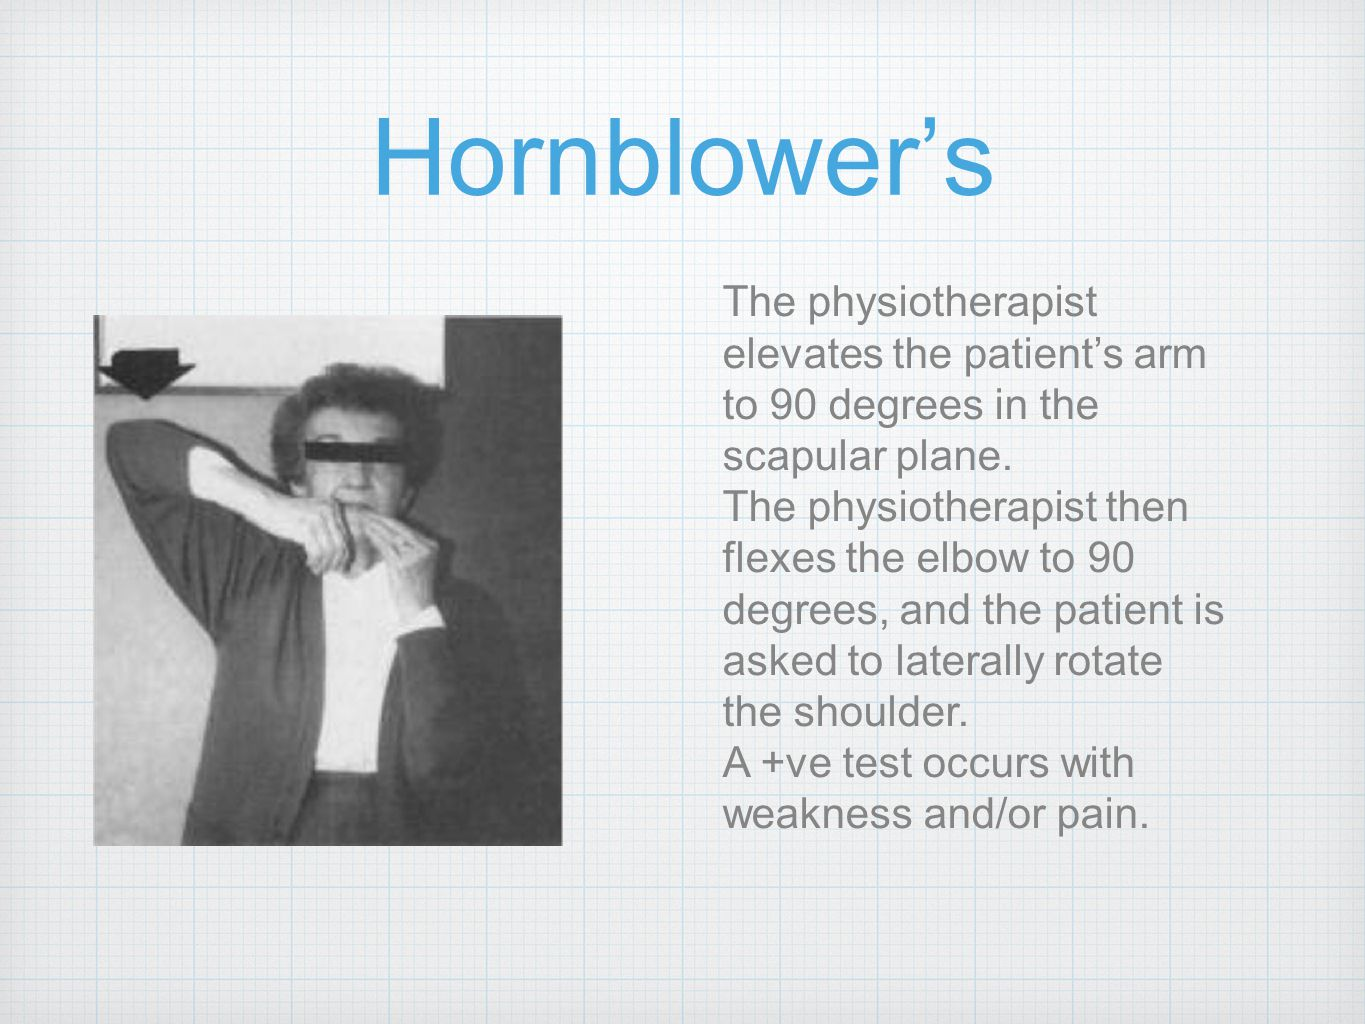 Hornblower's The physiotherapist elevates the patient's arm to 90 degrees in the scapular plane.